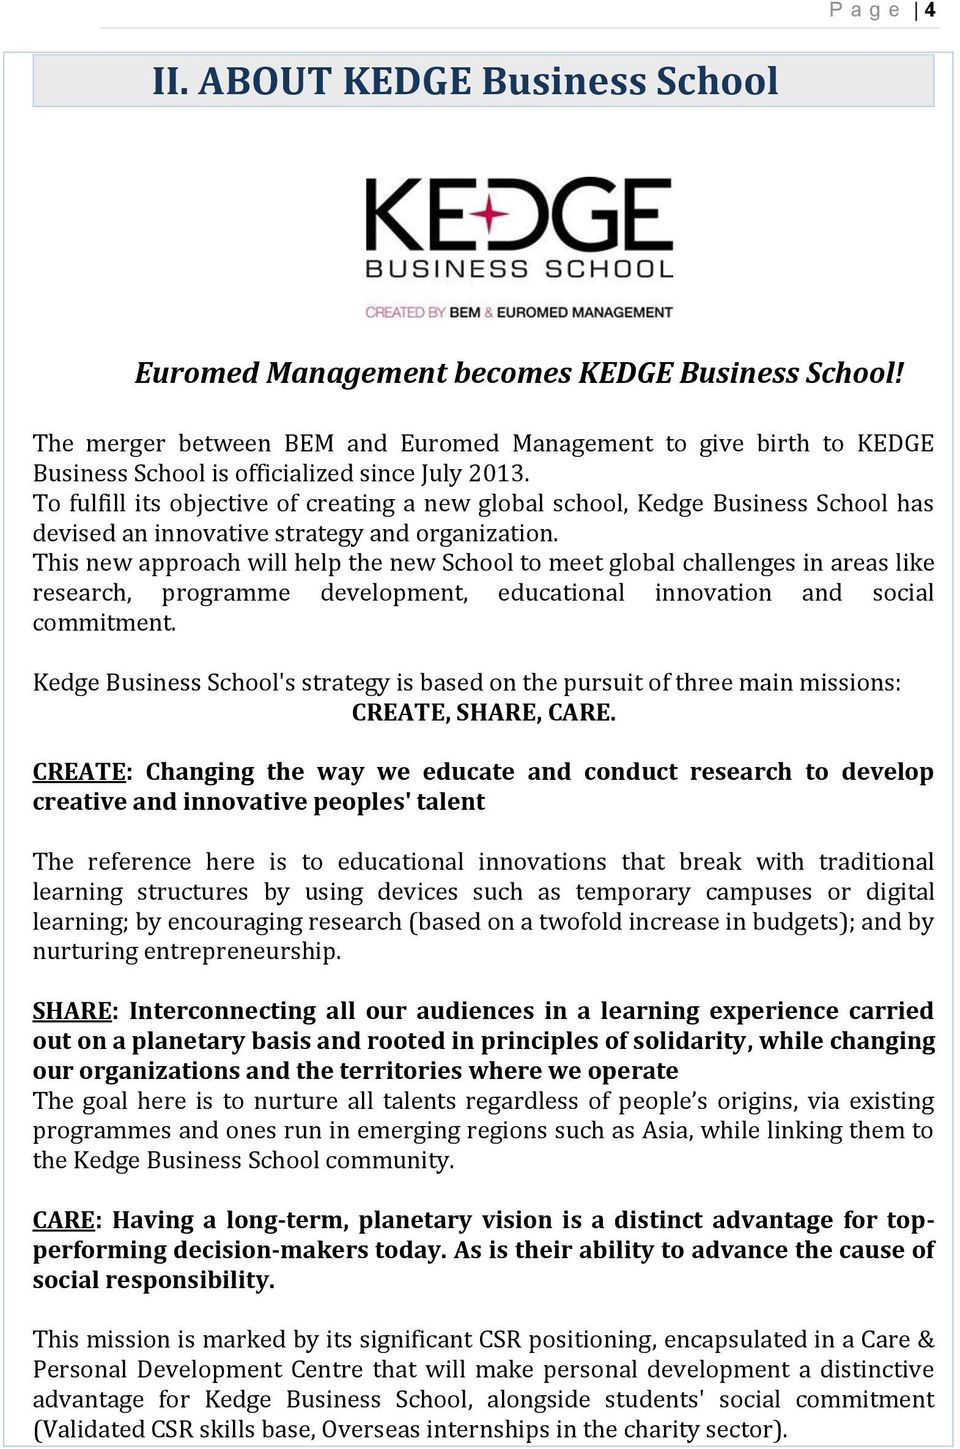 To fulfill its objective of creating a new global school, Kedge Business School has devised an innovative strategy and organization.